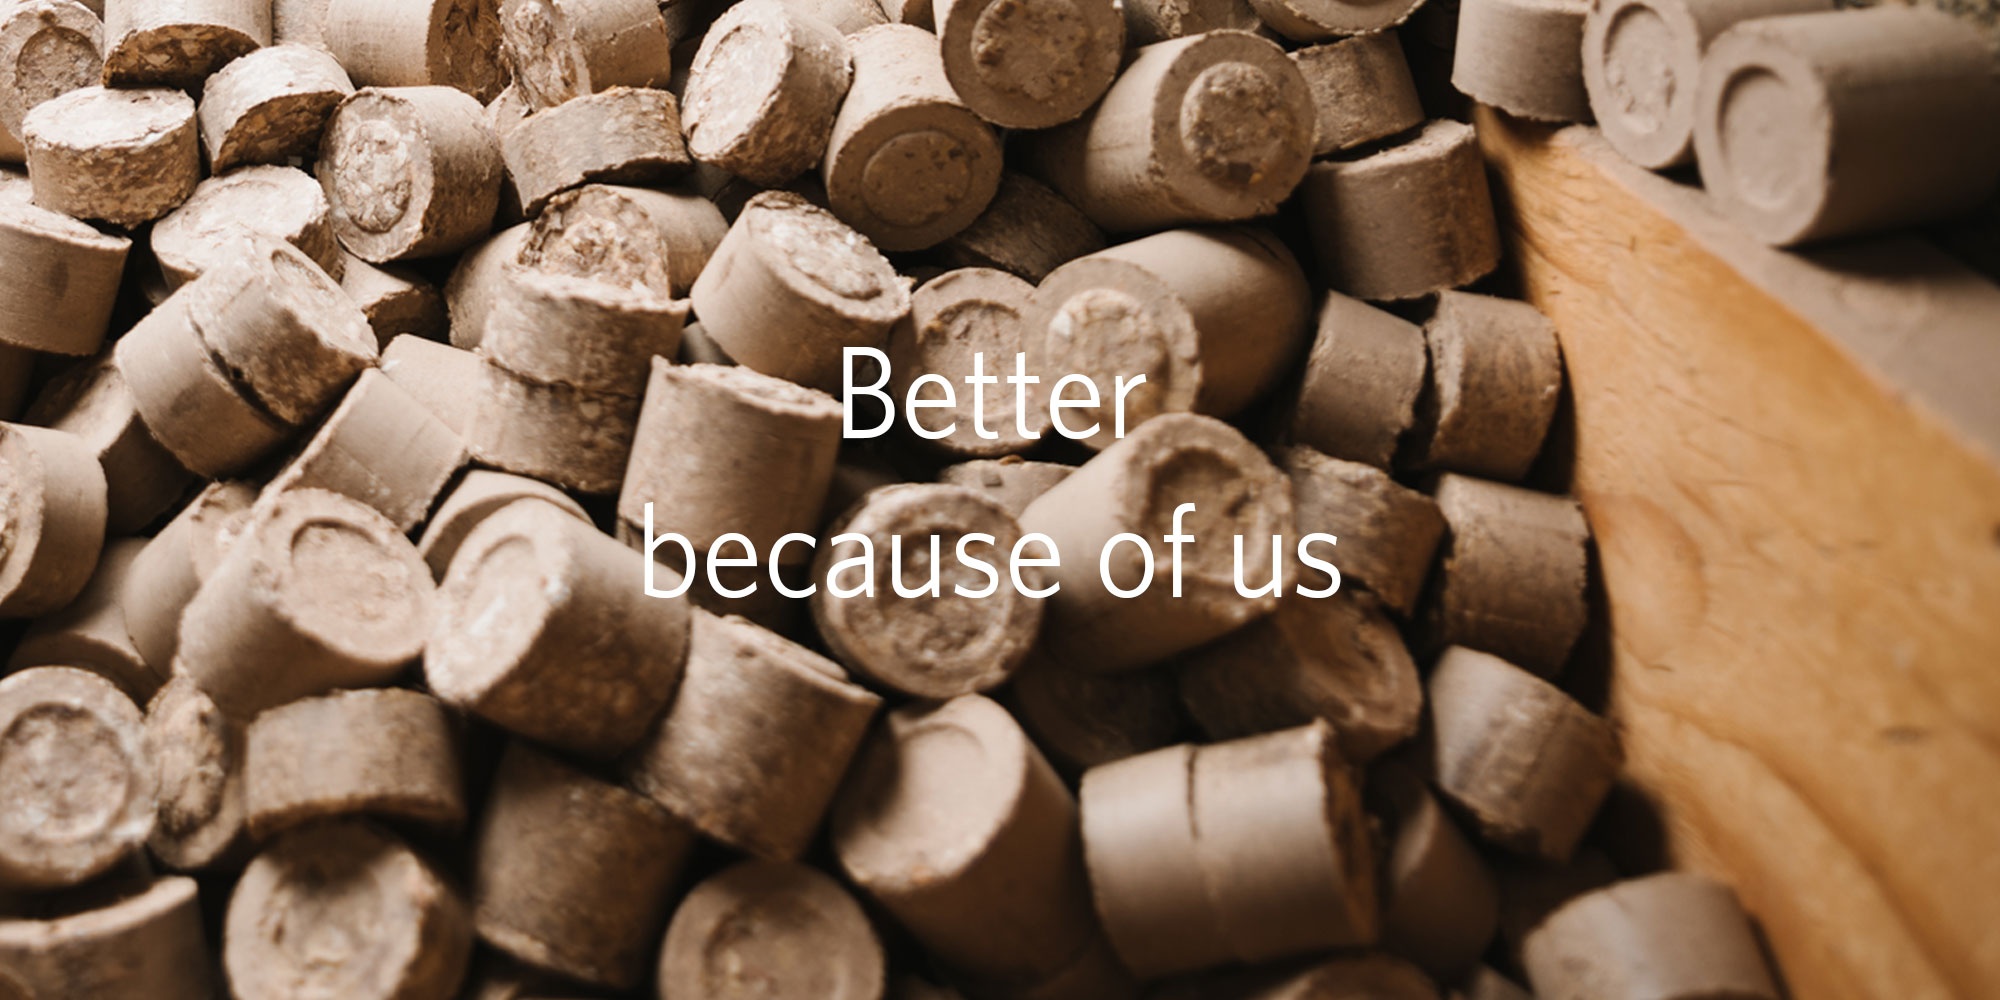 Banner image: Better because of us